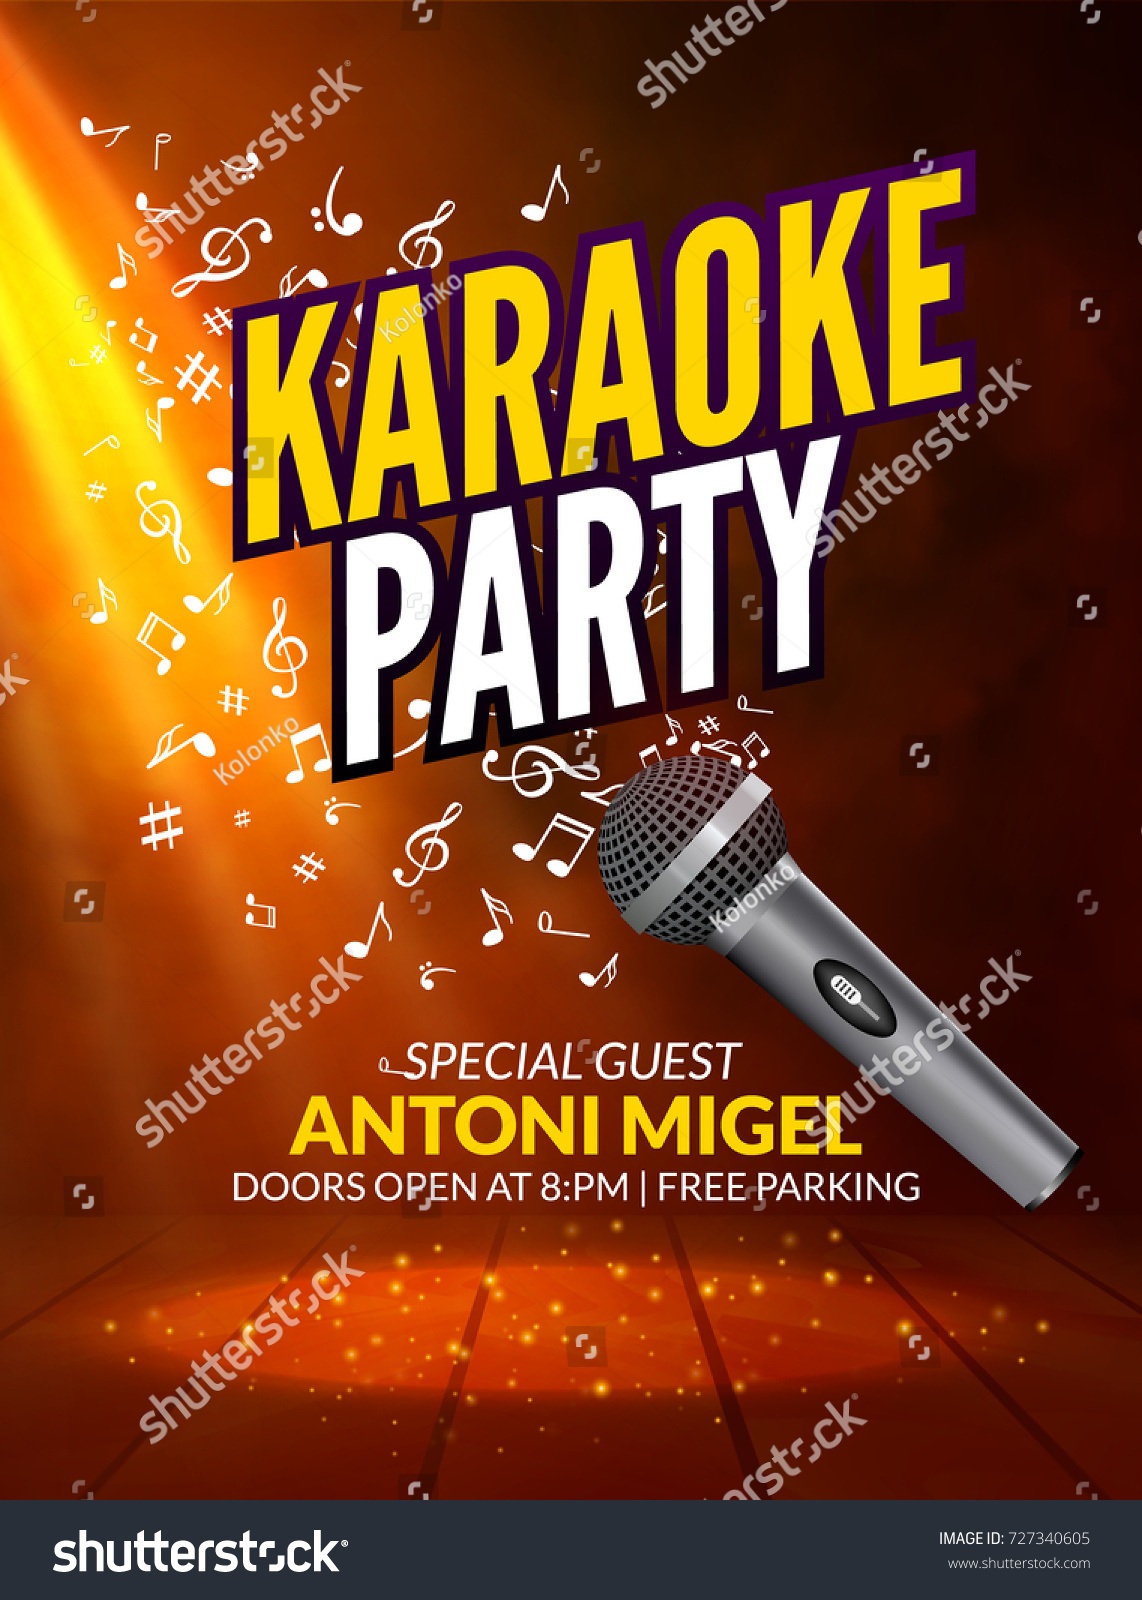 Karaoke Party Invitation Poster Design Template Stock Vector ...